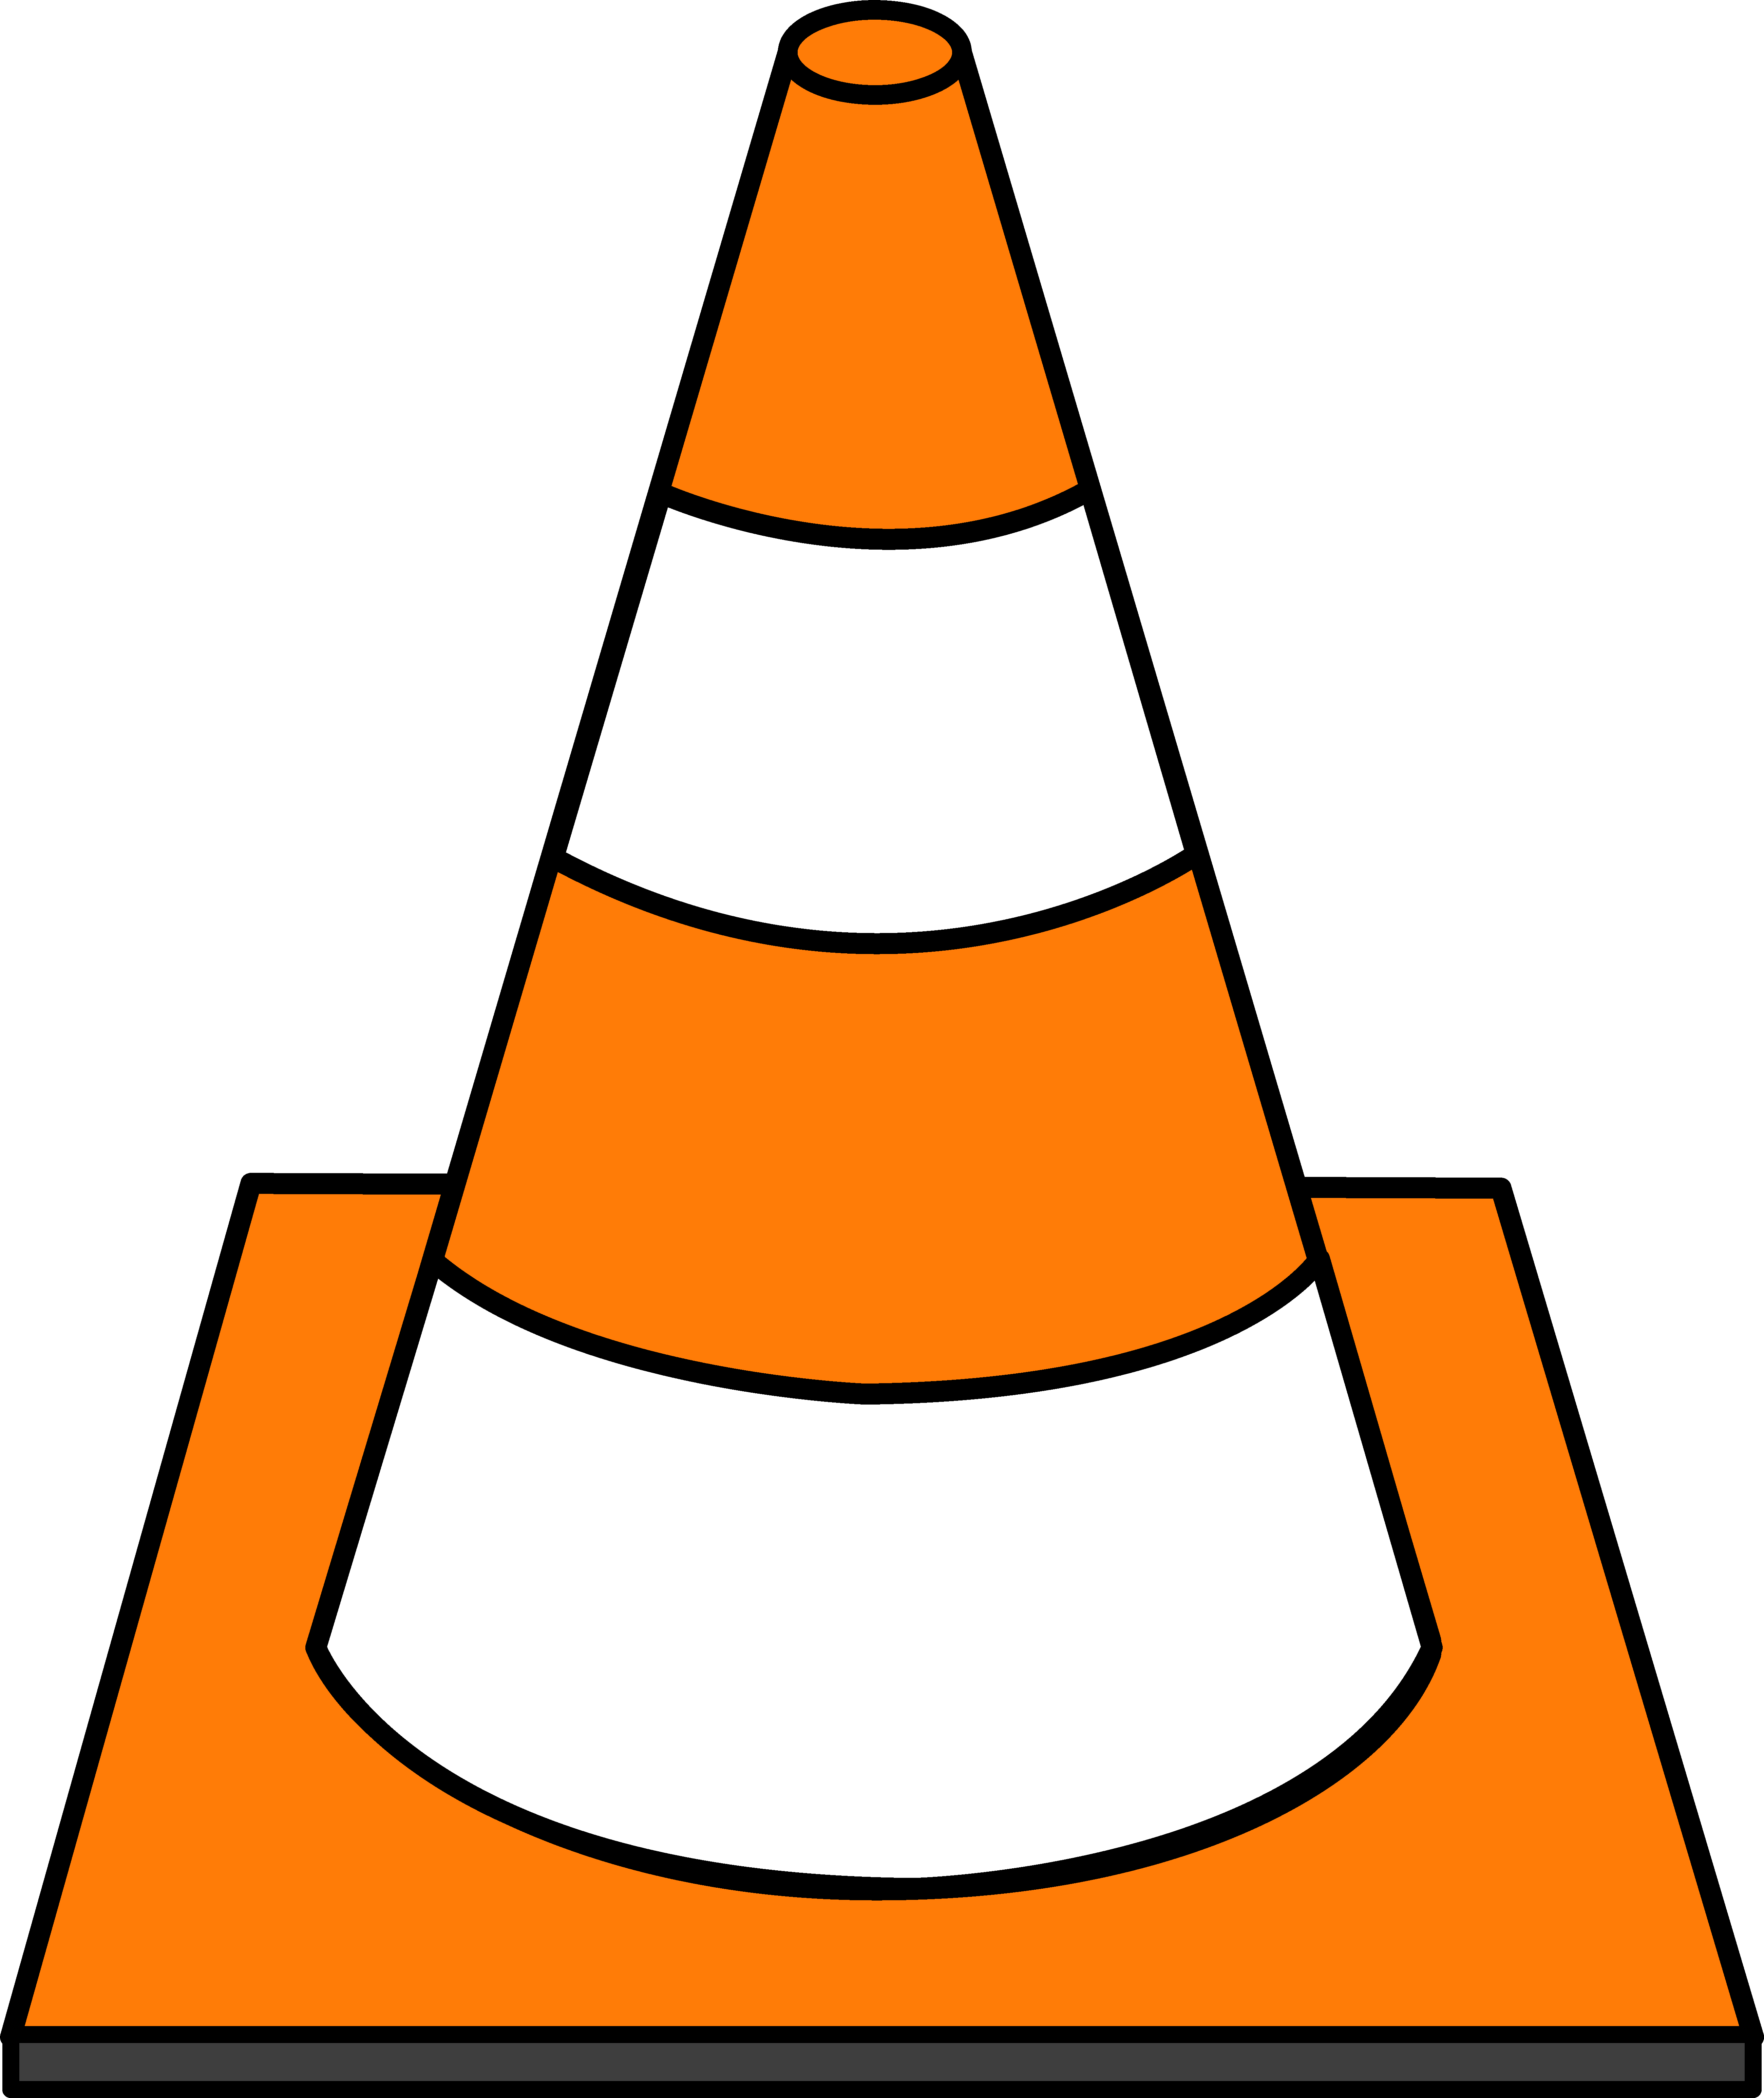 Free cones cliparts download. Cone clipart caution image library stock